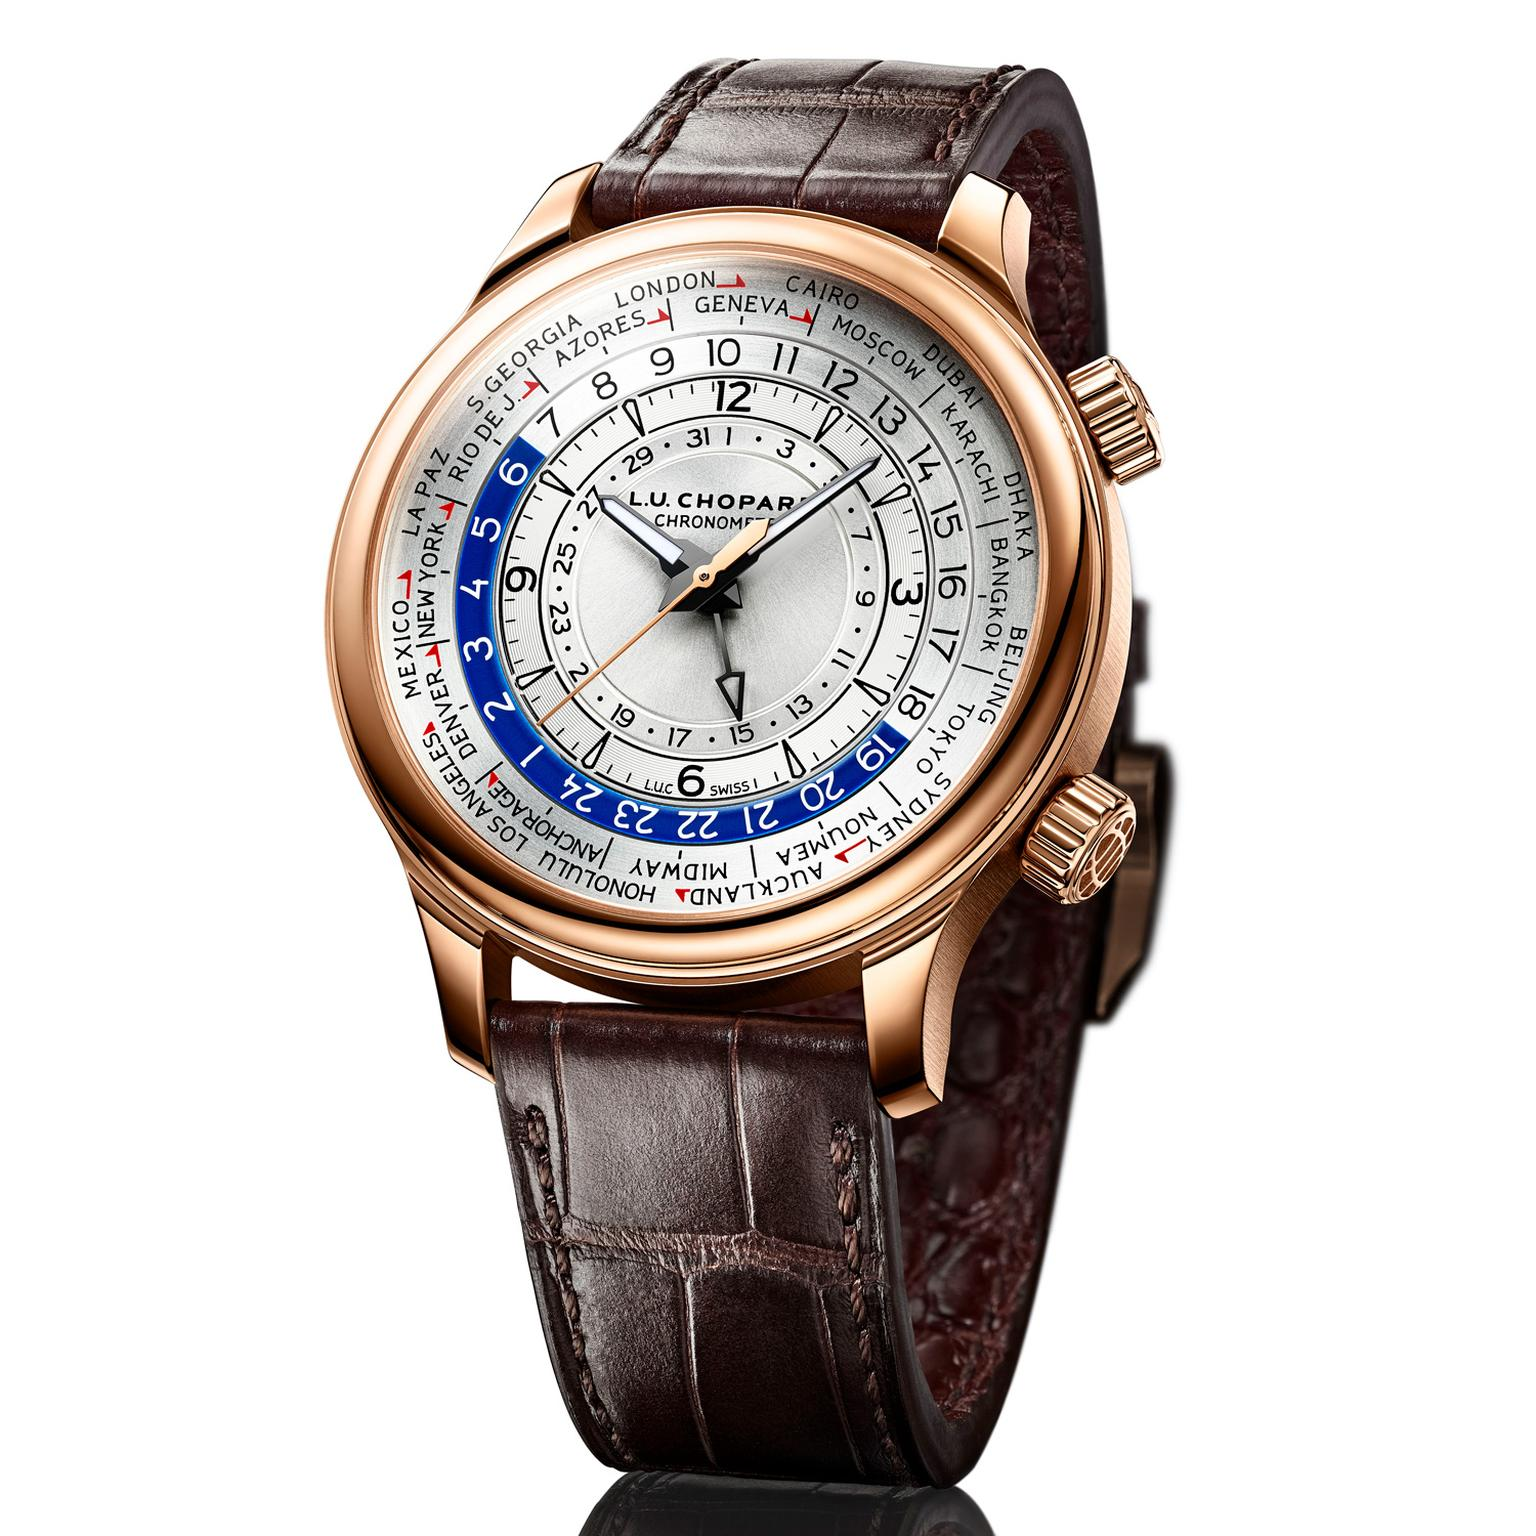 Chopard L.U.C Time Traveler One watch in rose gold